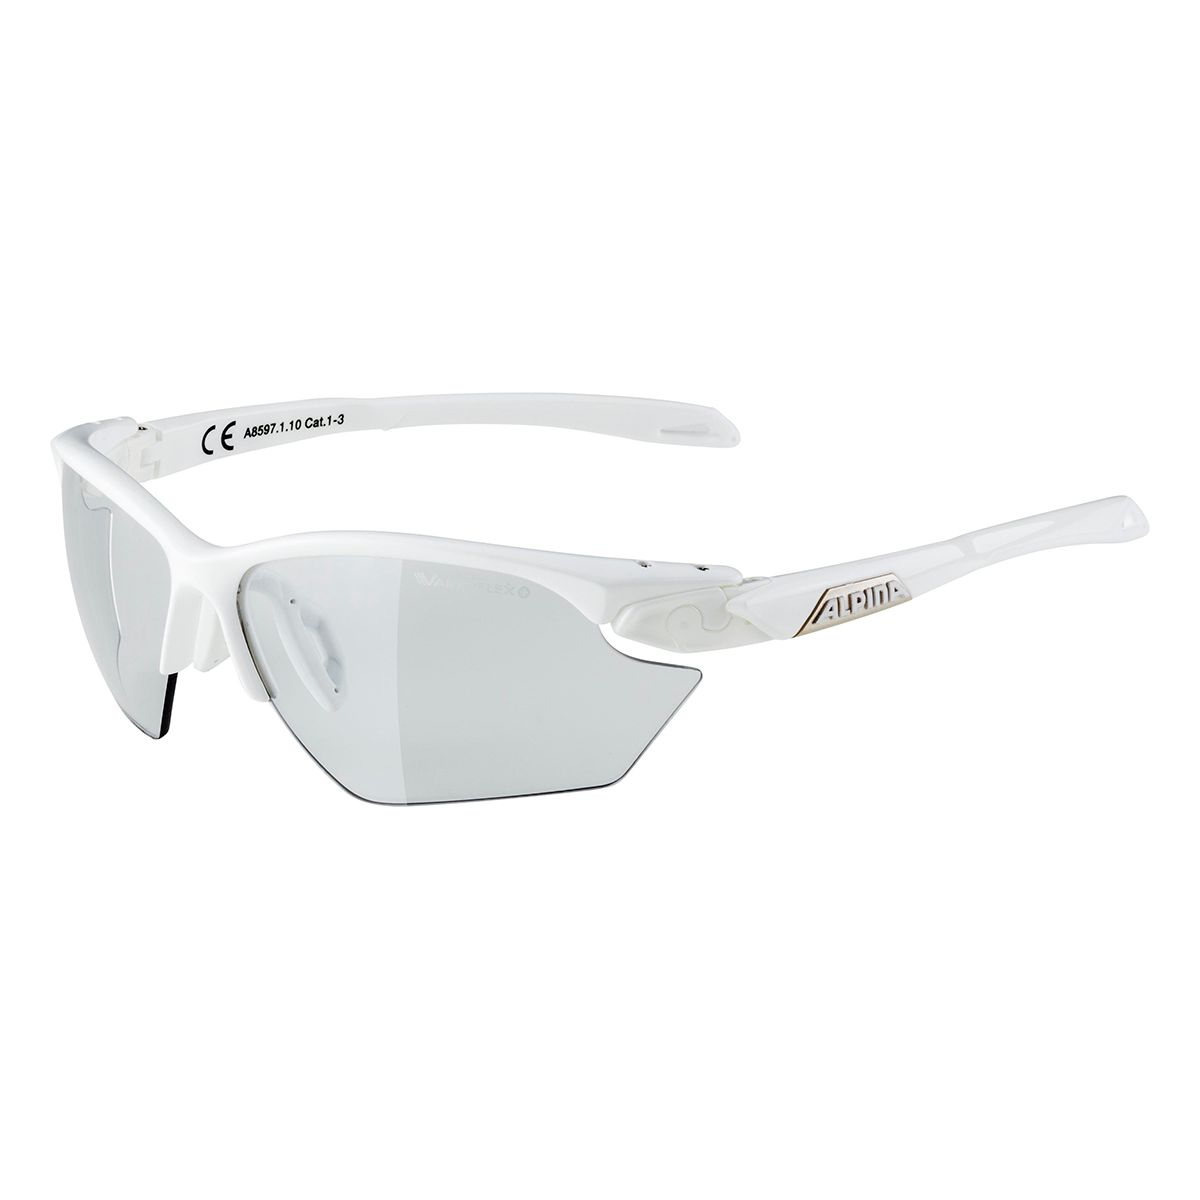 TWIST FIVE HR S VL+ Sportbrille